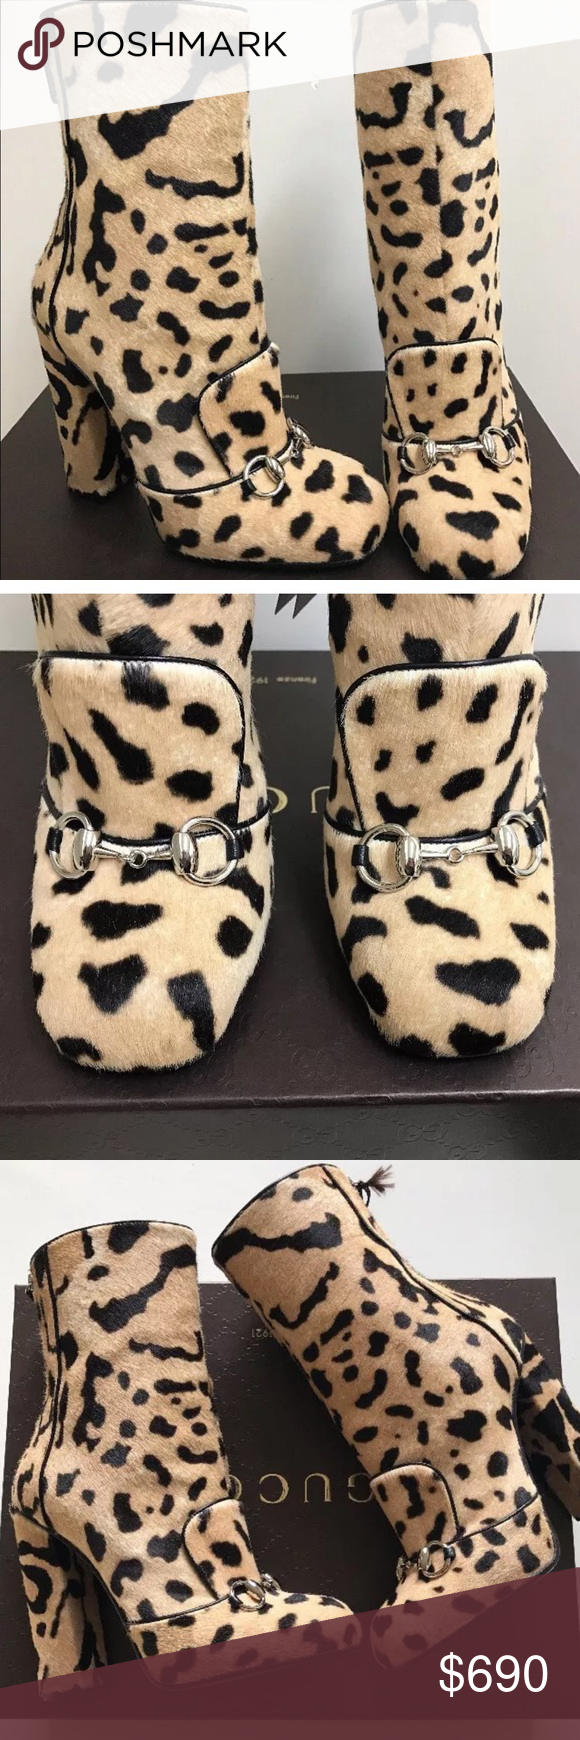 23bfed7be GUCCI Horsebit Leopard Pony Hair MId-Calf Boots Authentic Gucci Lillian  Horsebit Pony Hair Leopard